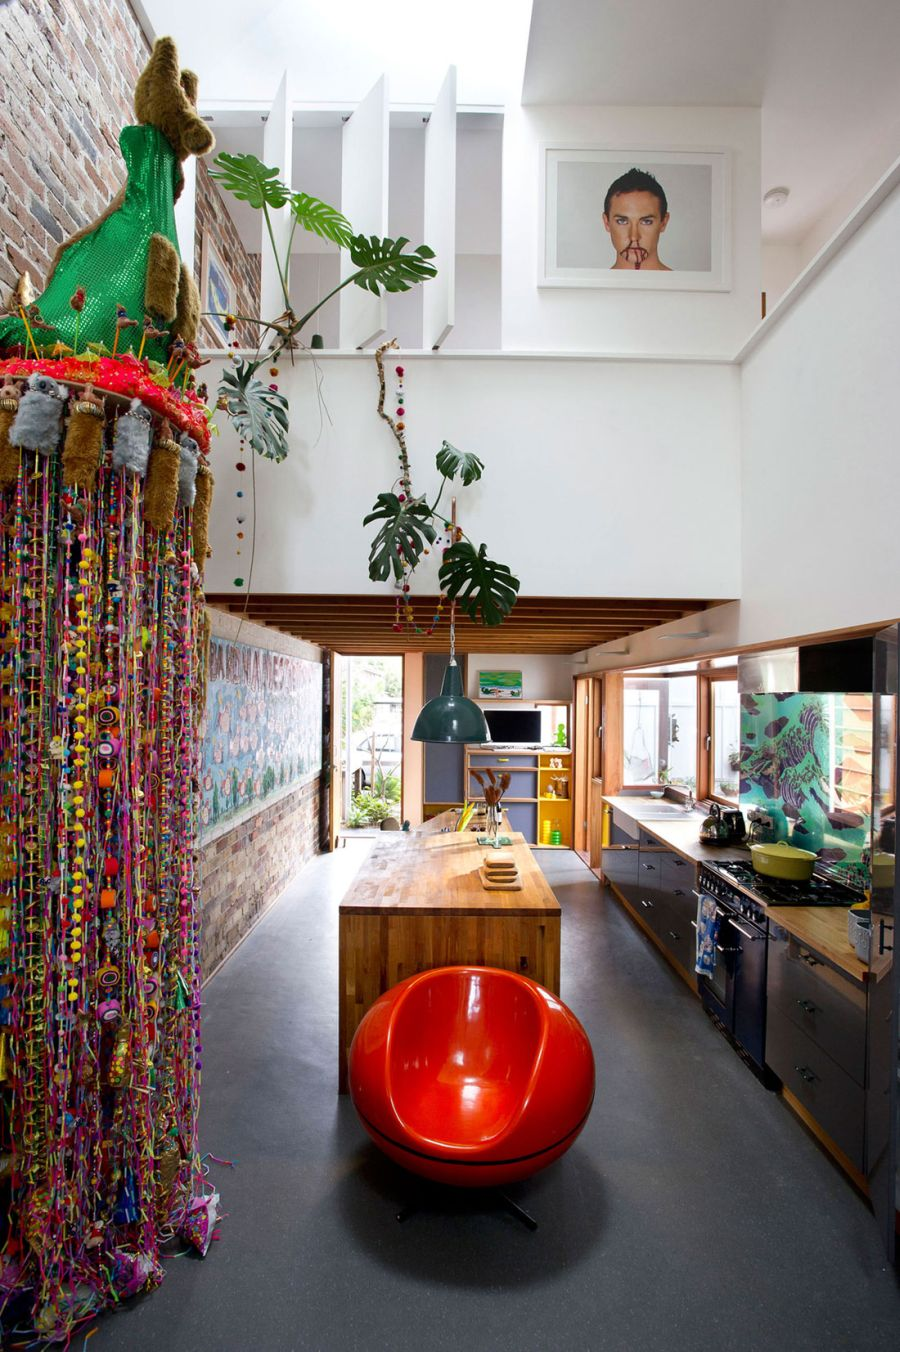 Colorful interiors of the Sydney Residence Eclectic Sydney House Presents Colorful And Quirky Interiors